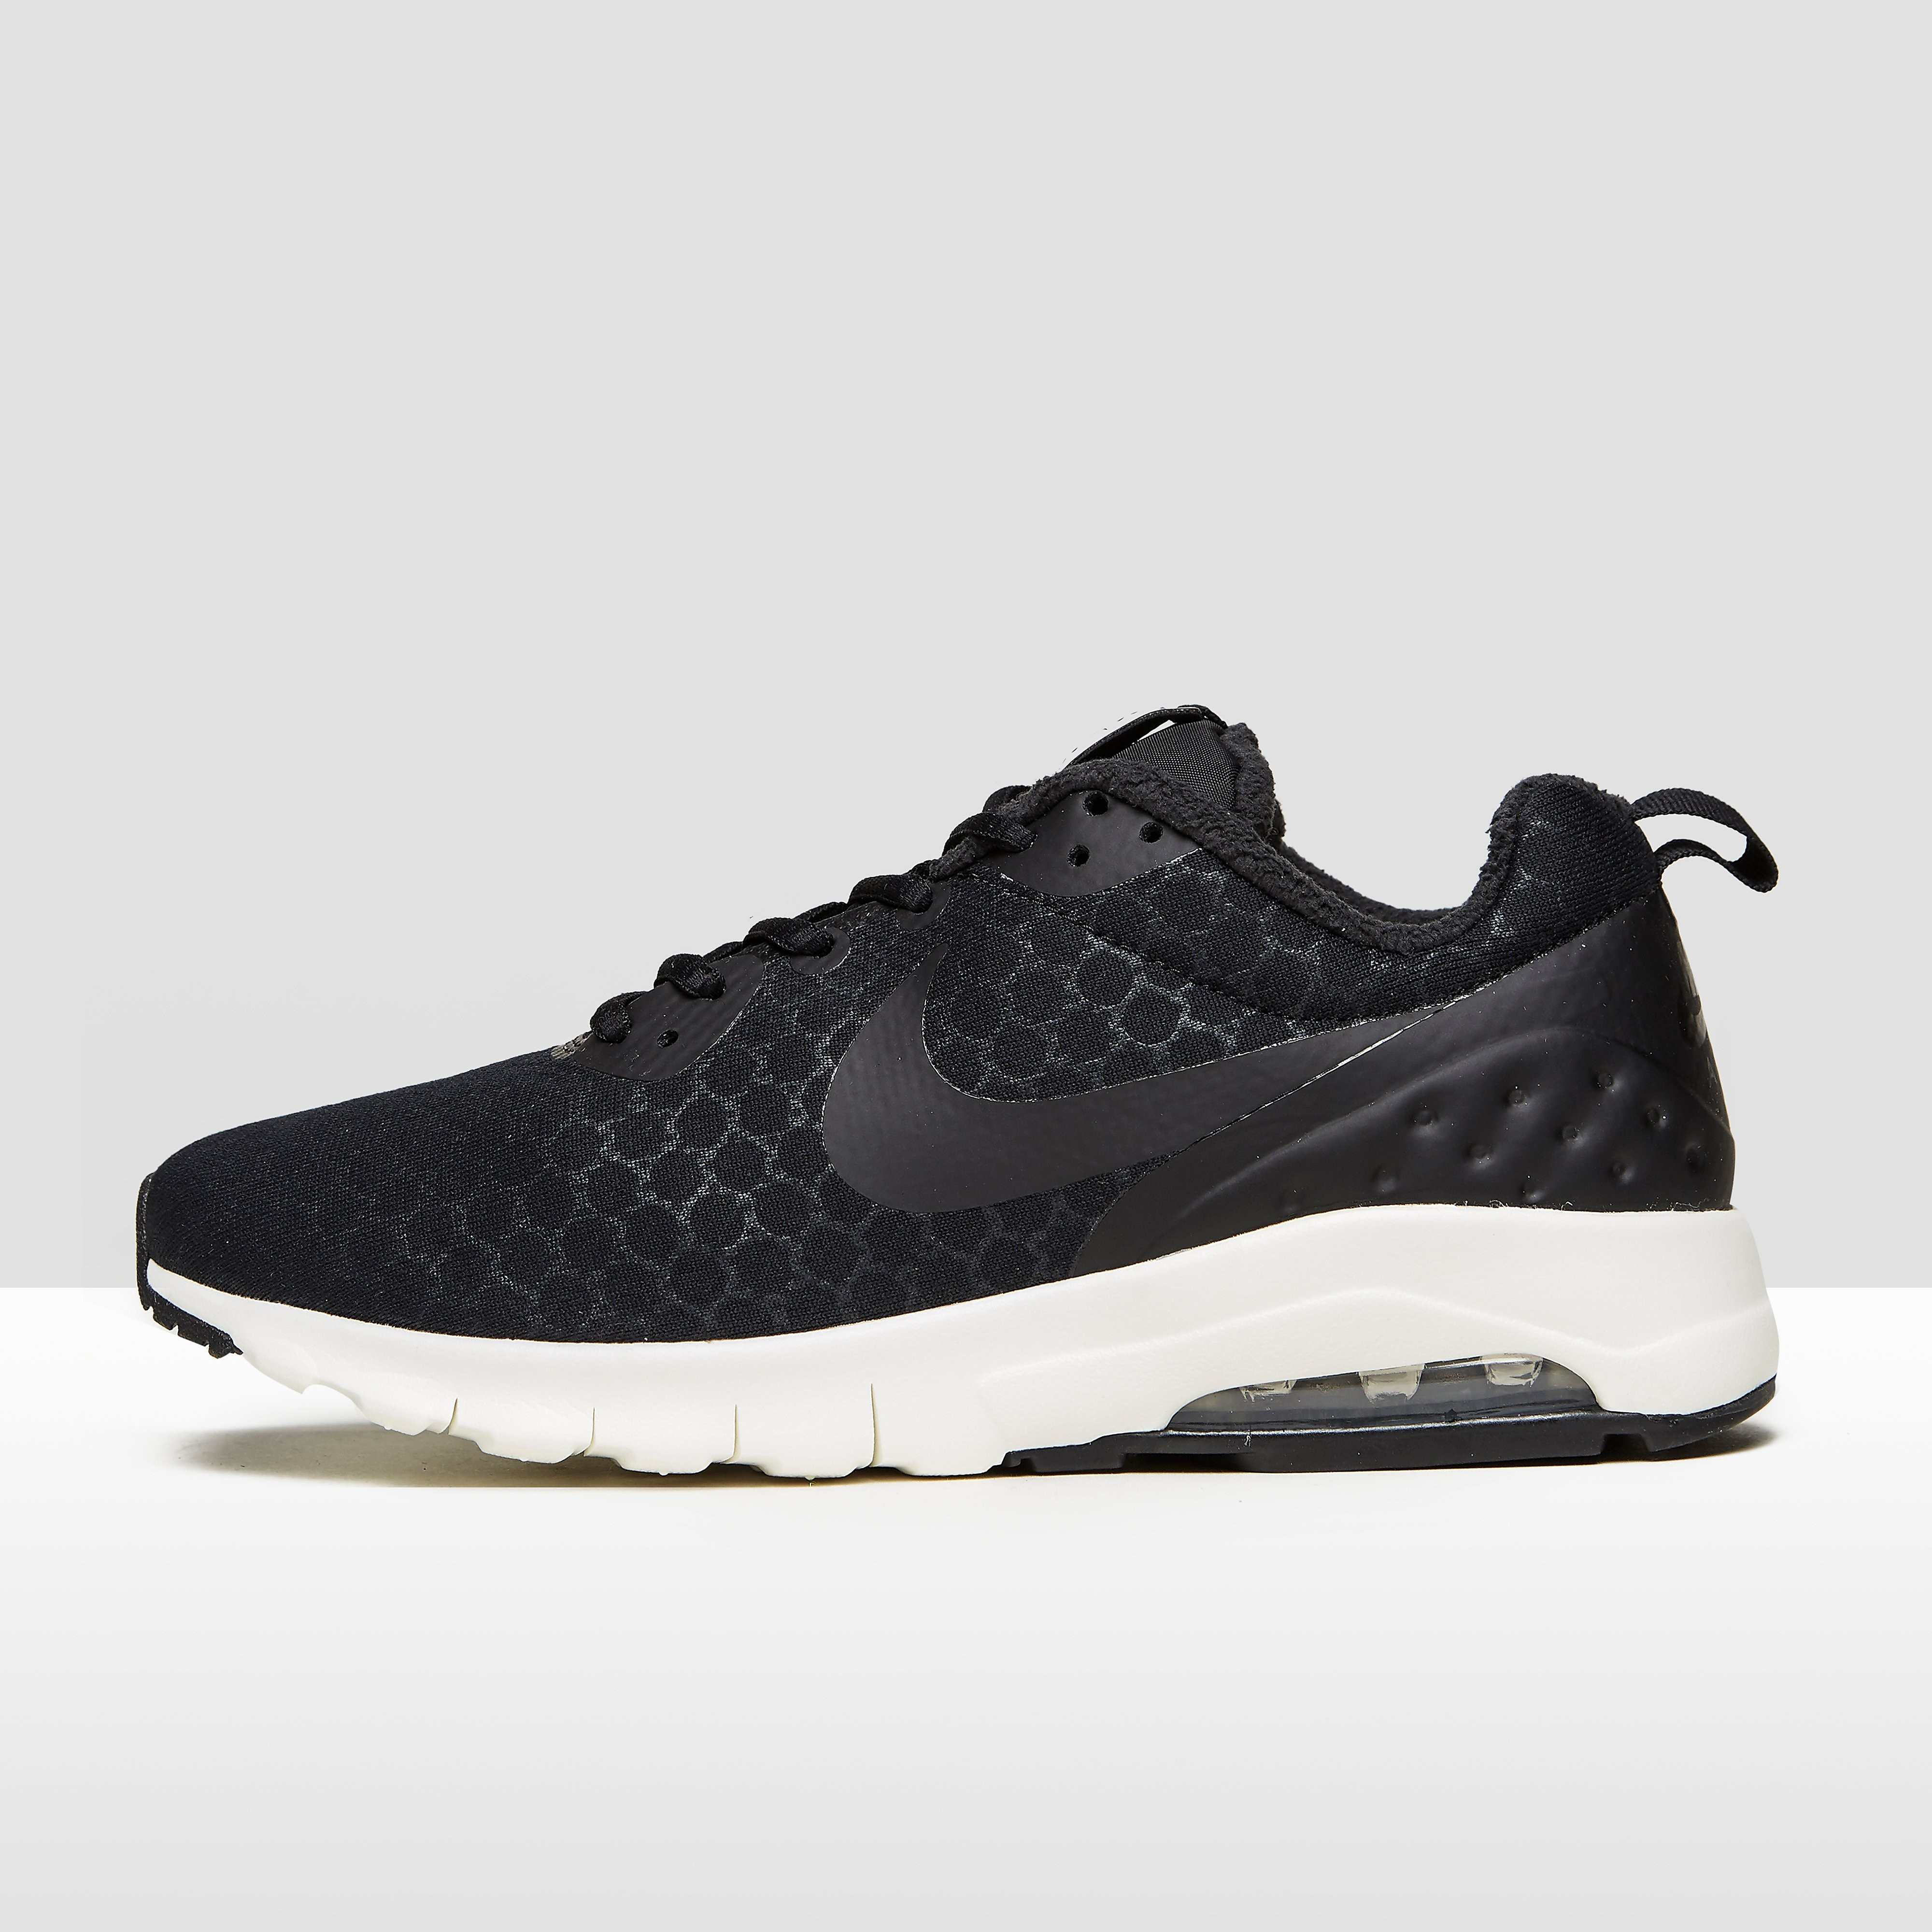 NIKE AIR MAX MOTION LW SE HARDLOOPSCHOENEN DAMES